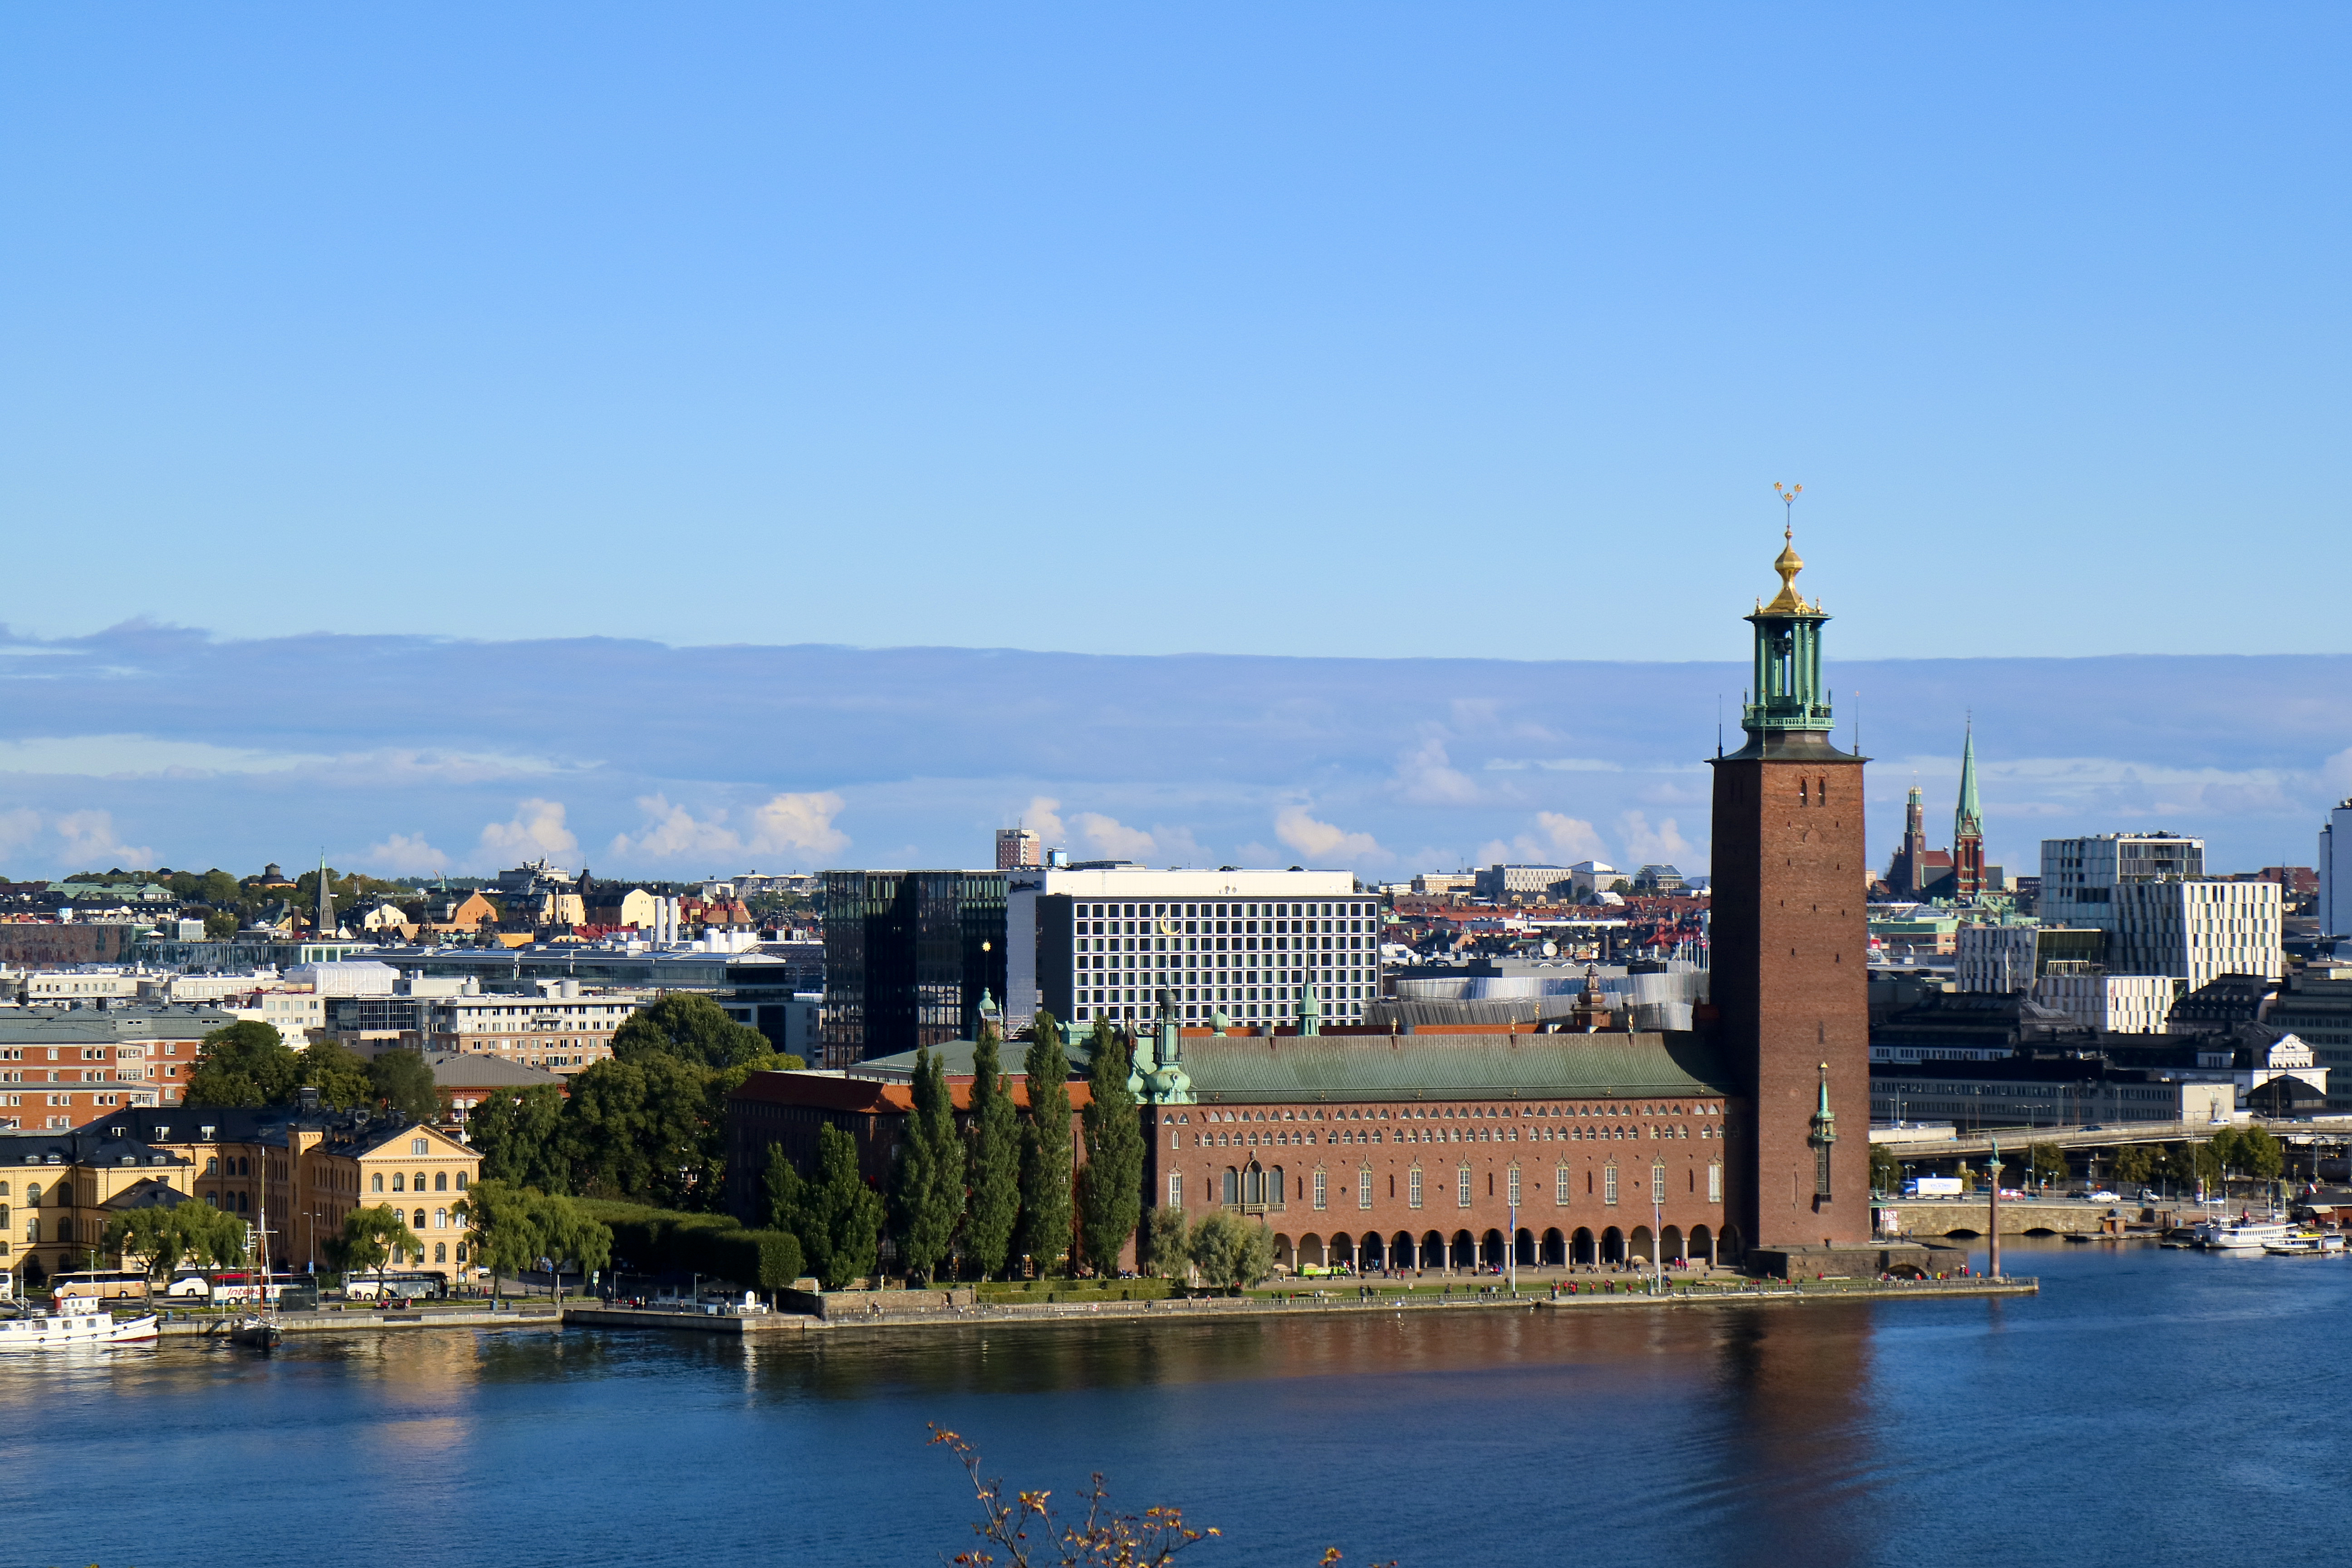 Stockholms stadshus / Stockholm City Hall, Building, City, Hall, Sky, HQ Photo